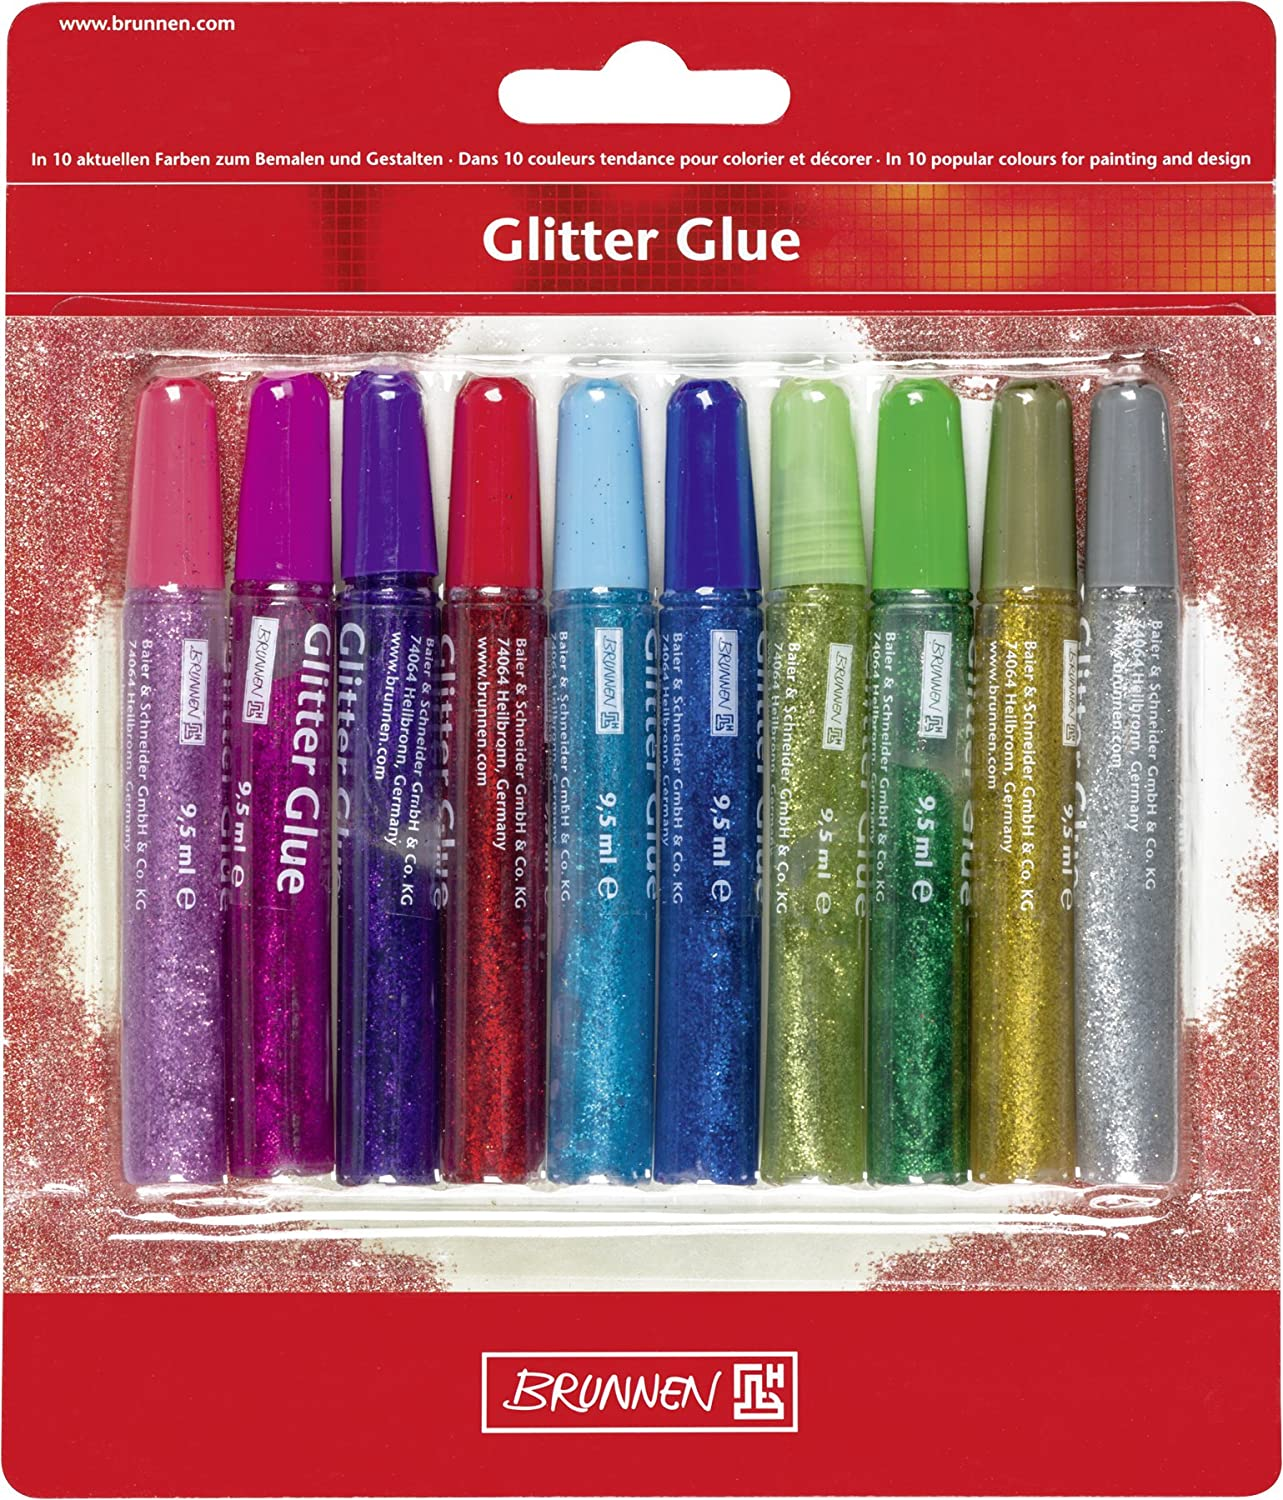 1 year warranty Brunnen 1048550 Scented New product Glitter Glue Pen mm Col 10 Assorted 1 in